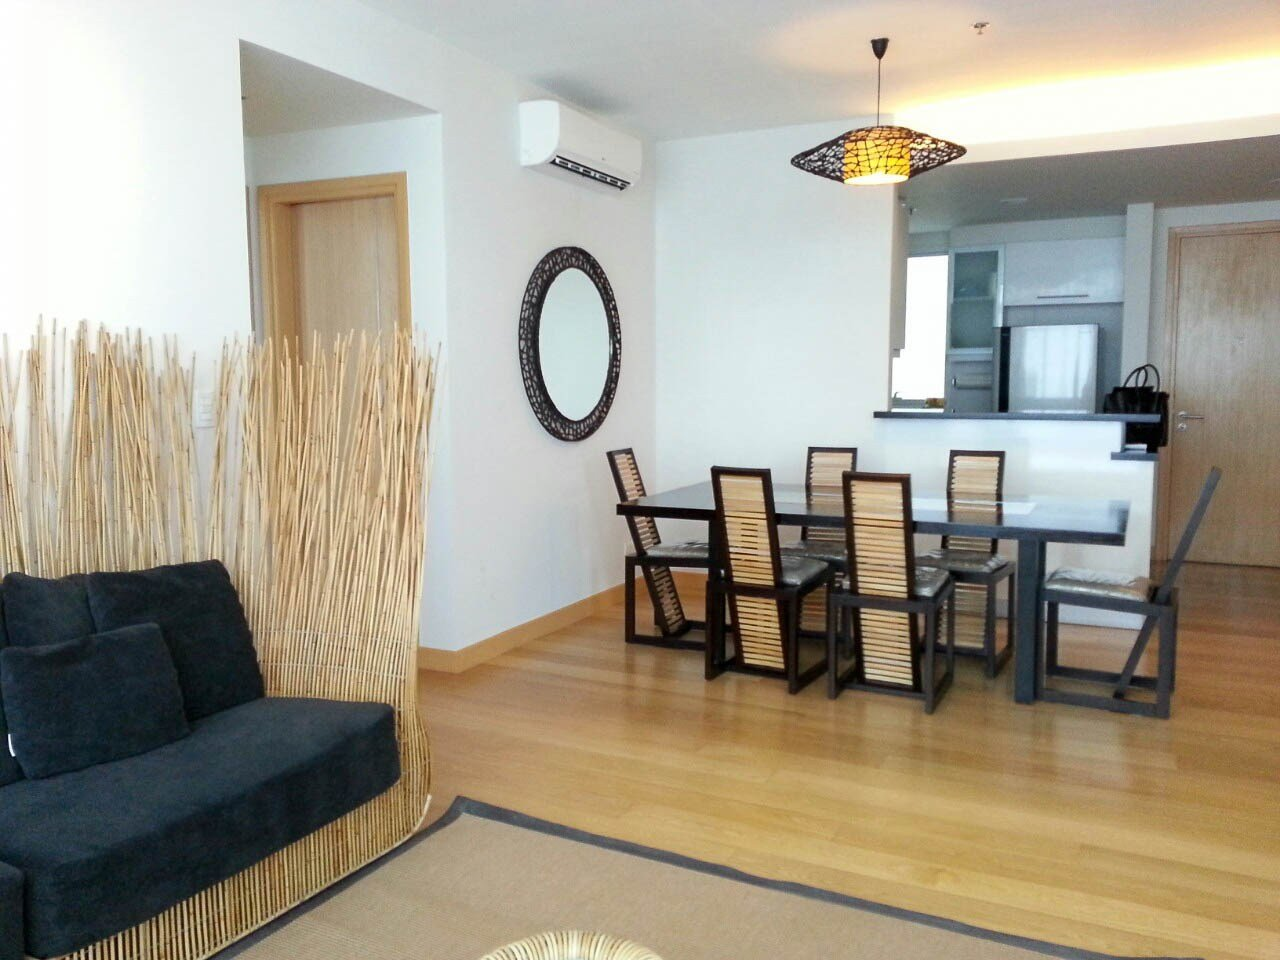 Best 2 Bedroom Condo For Rent In Cebu Business Park 1016 Residences With Pictures Original 1024 x 768